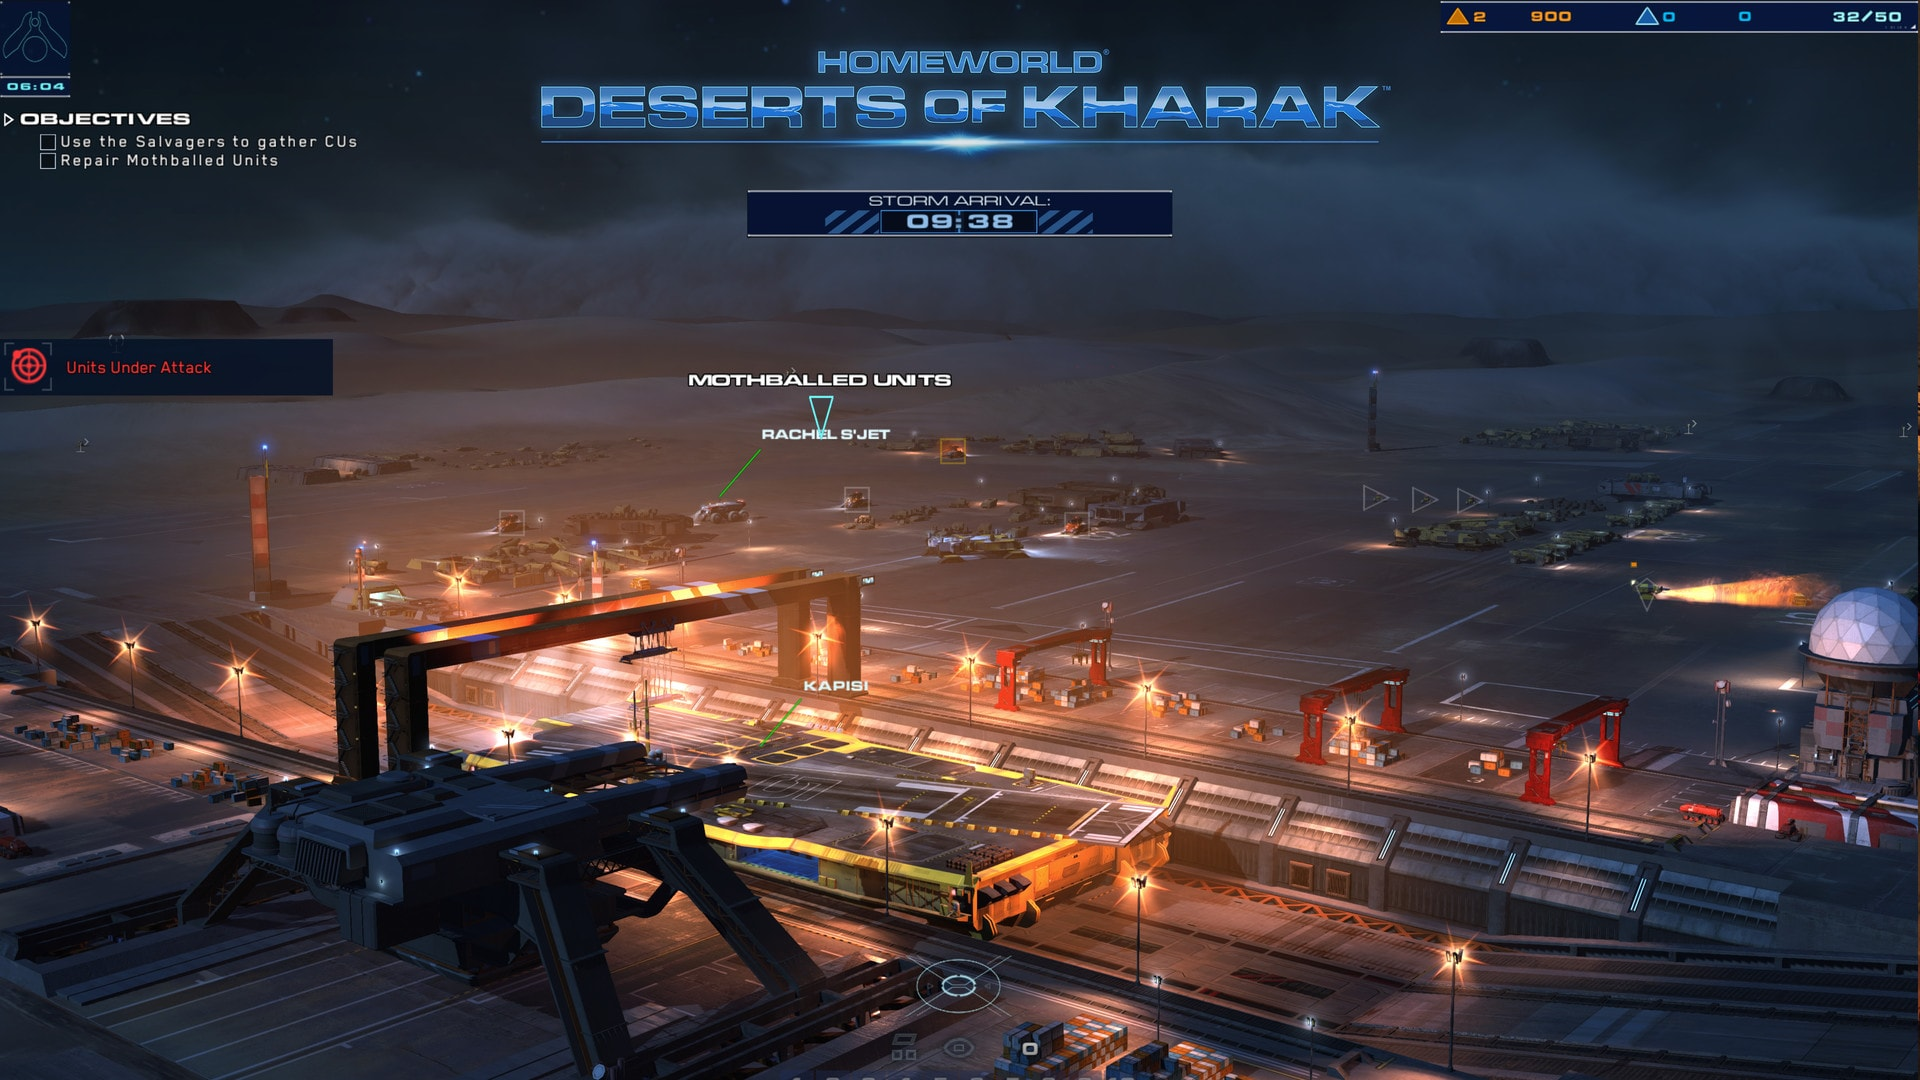 Homeworld: Deserts of Kharak Widescreen for desktop